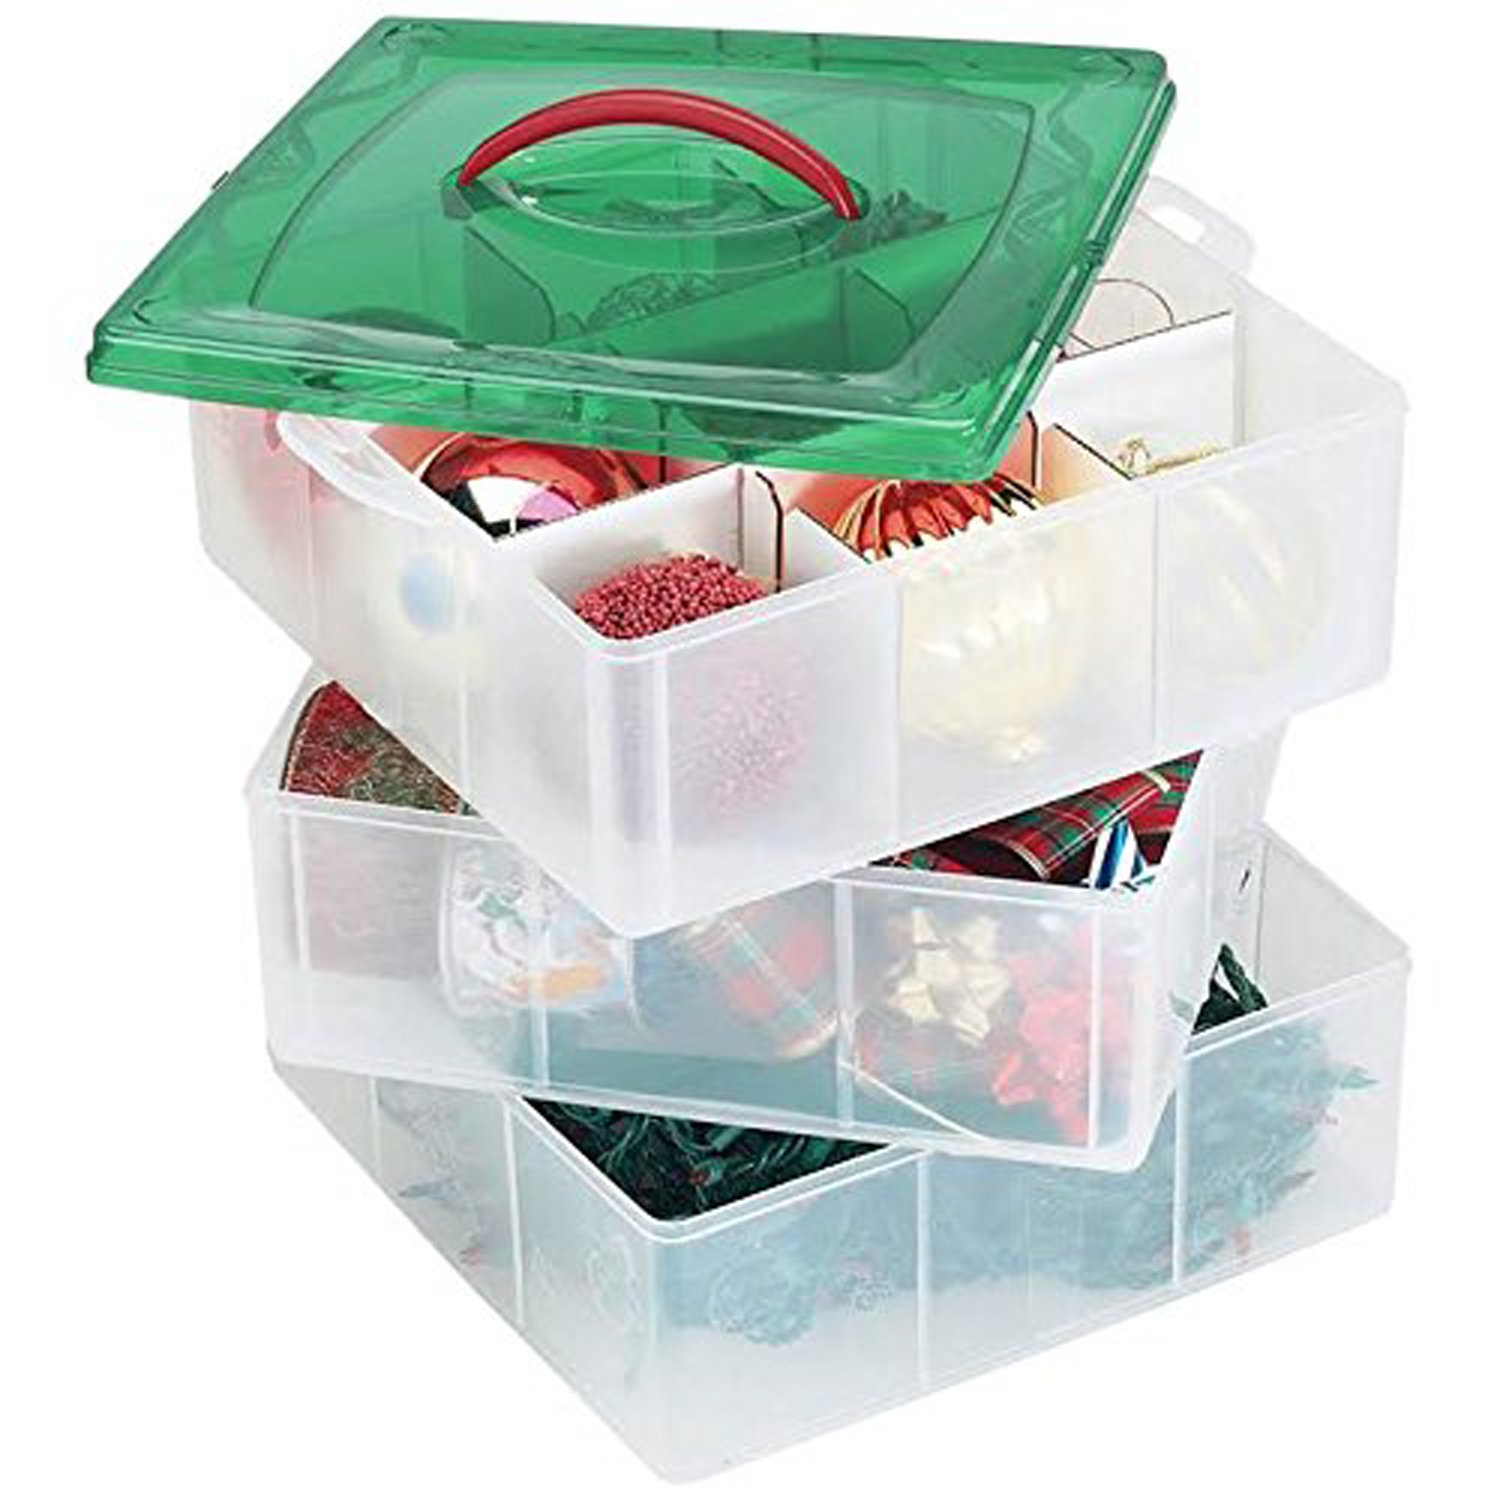 christmas plastic ornament storage container 3 stackable snap together box trays bundled with ribbon container cloth amazoncouk kitchen home